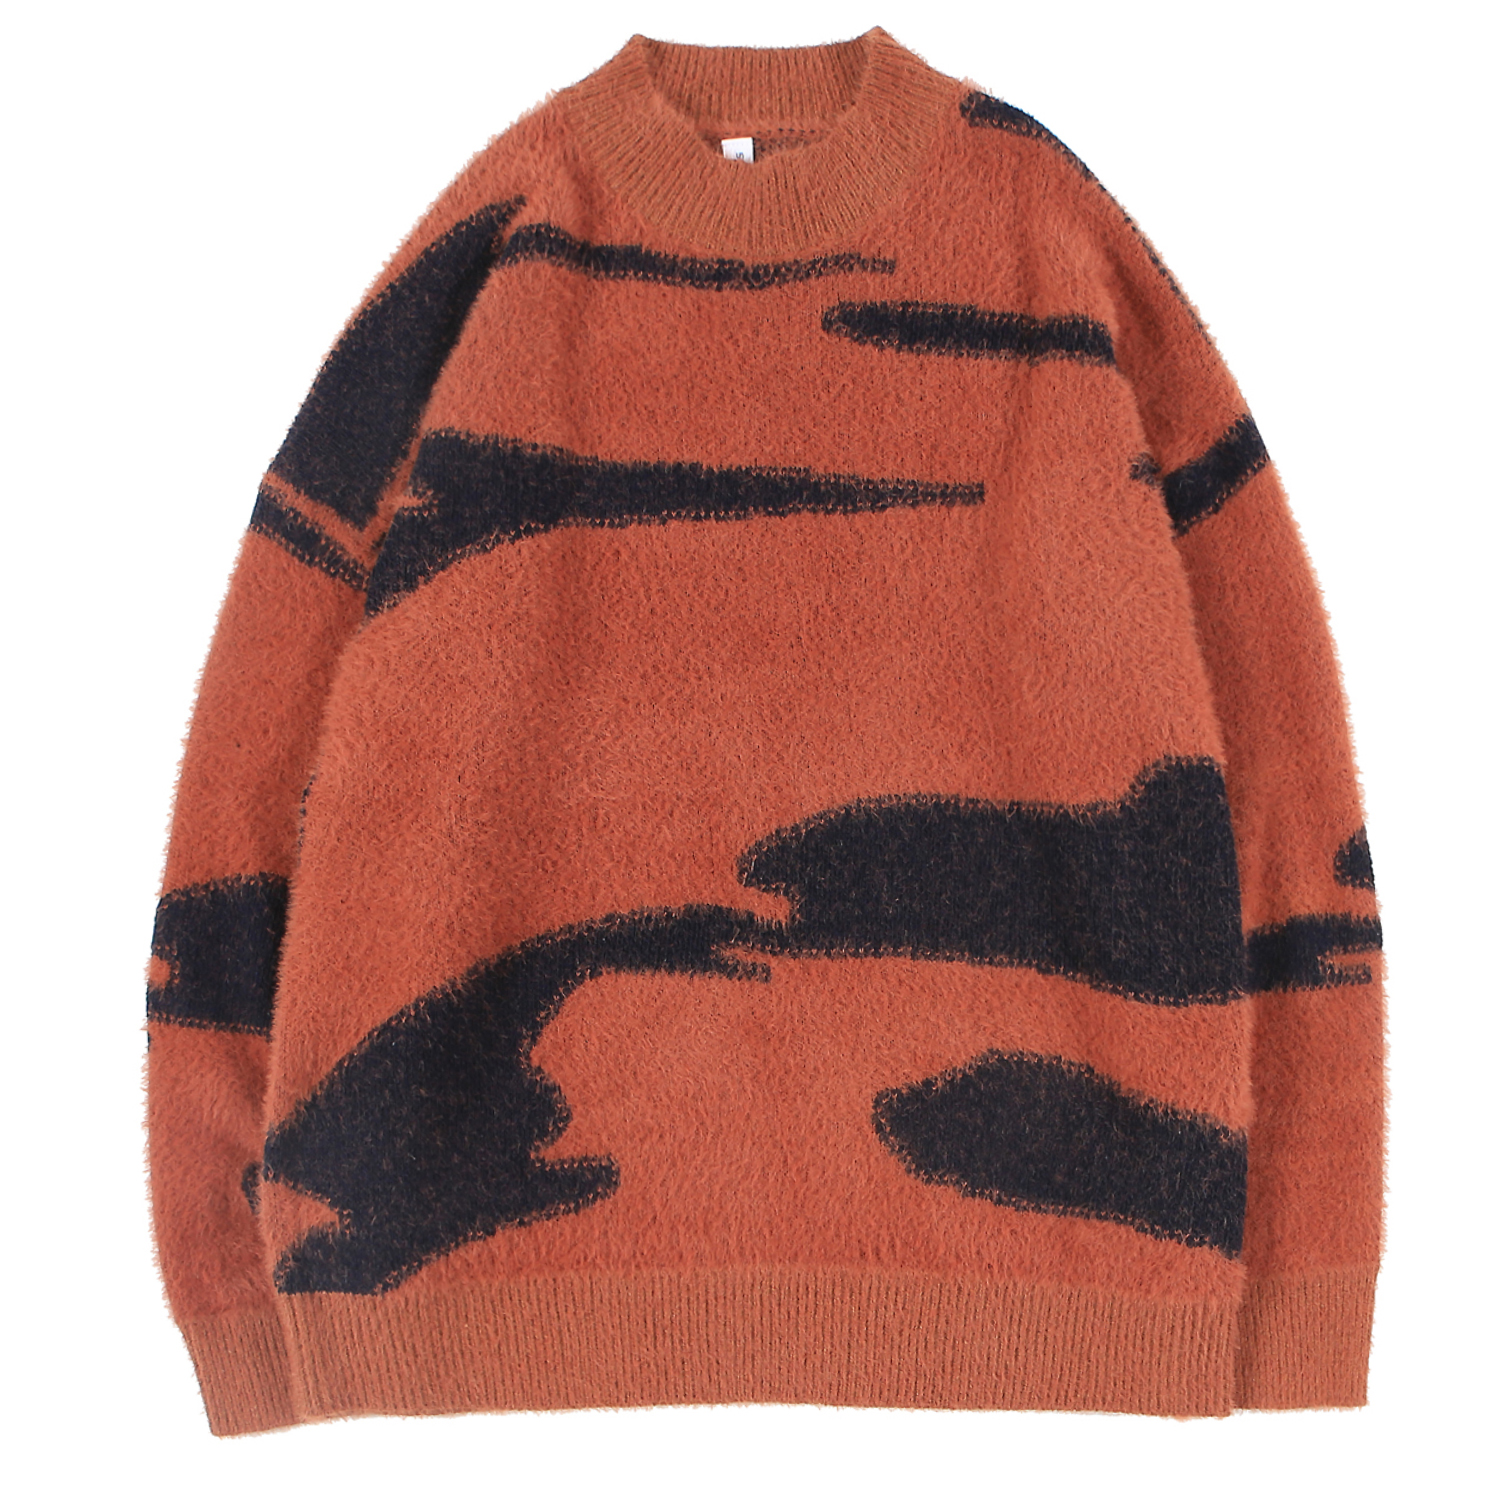 Men's Jumpers Knitted Sweater Cashmere Pullover Crewneck Zebra Combination Tops Outdoor Fashion For Young Boys Autumn Winter